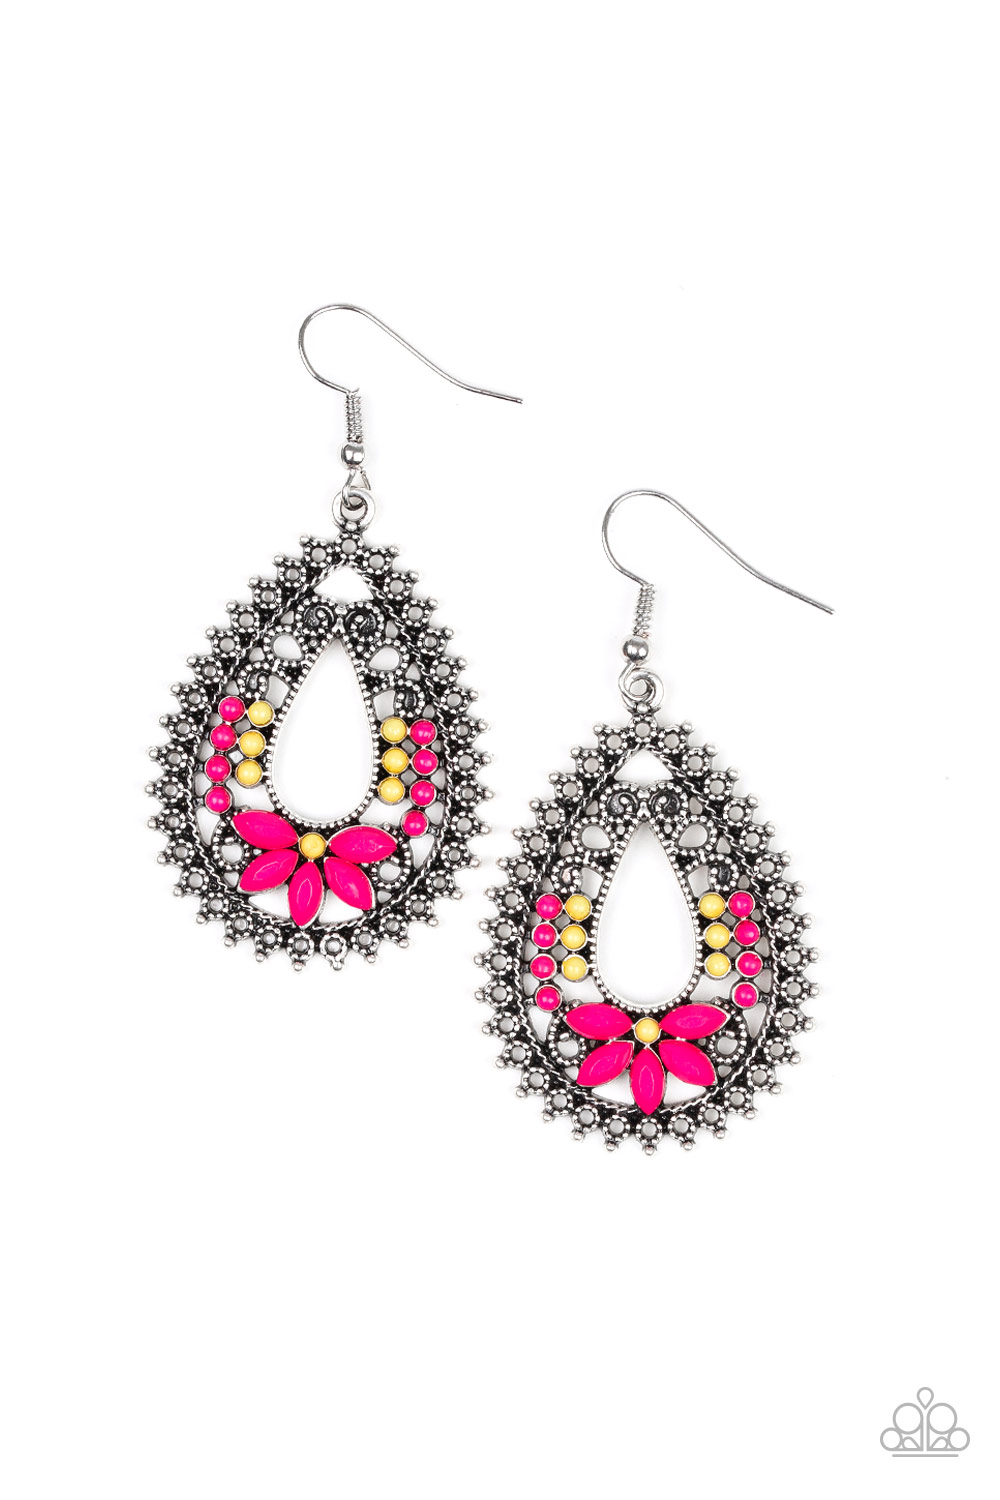 Gorgeous Hot Pink and Yellow beaded earrings on Antiqued Silver. $5 a pair www.my-bling.com